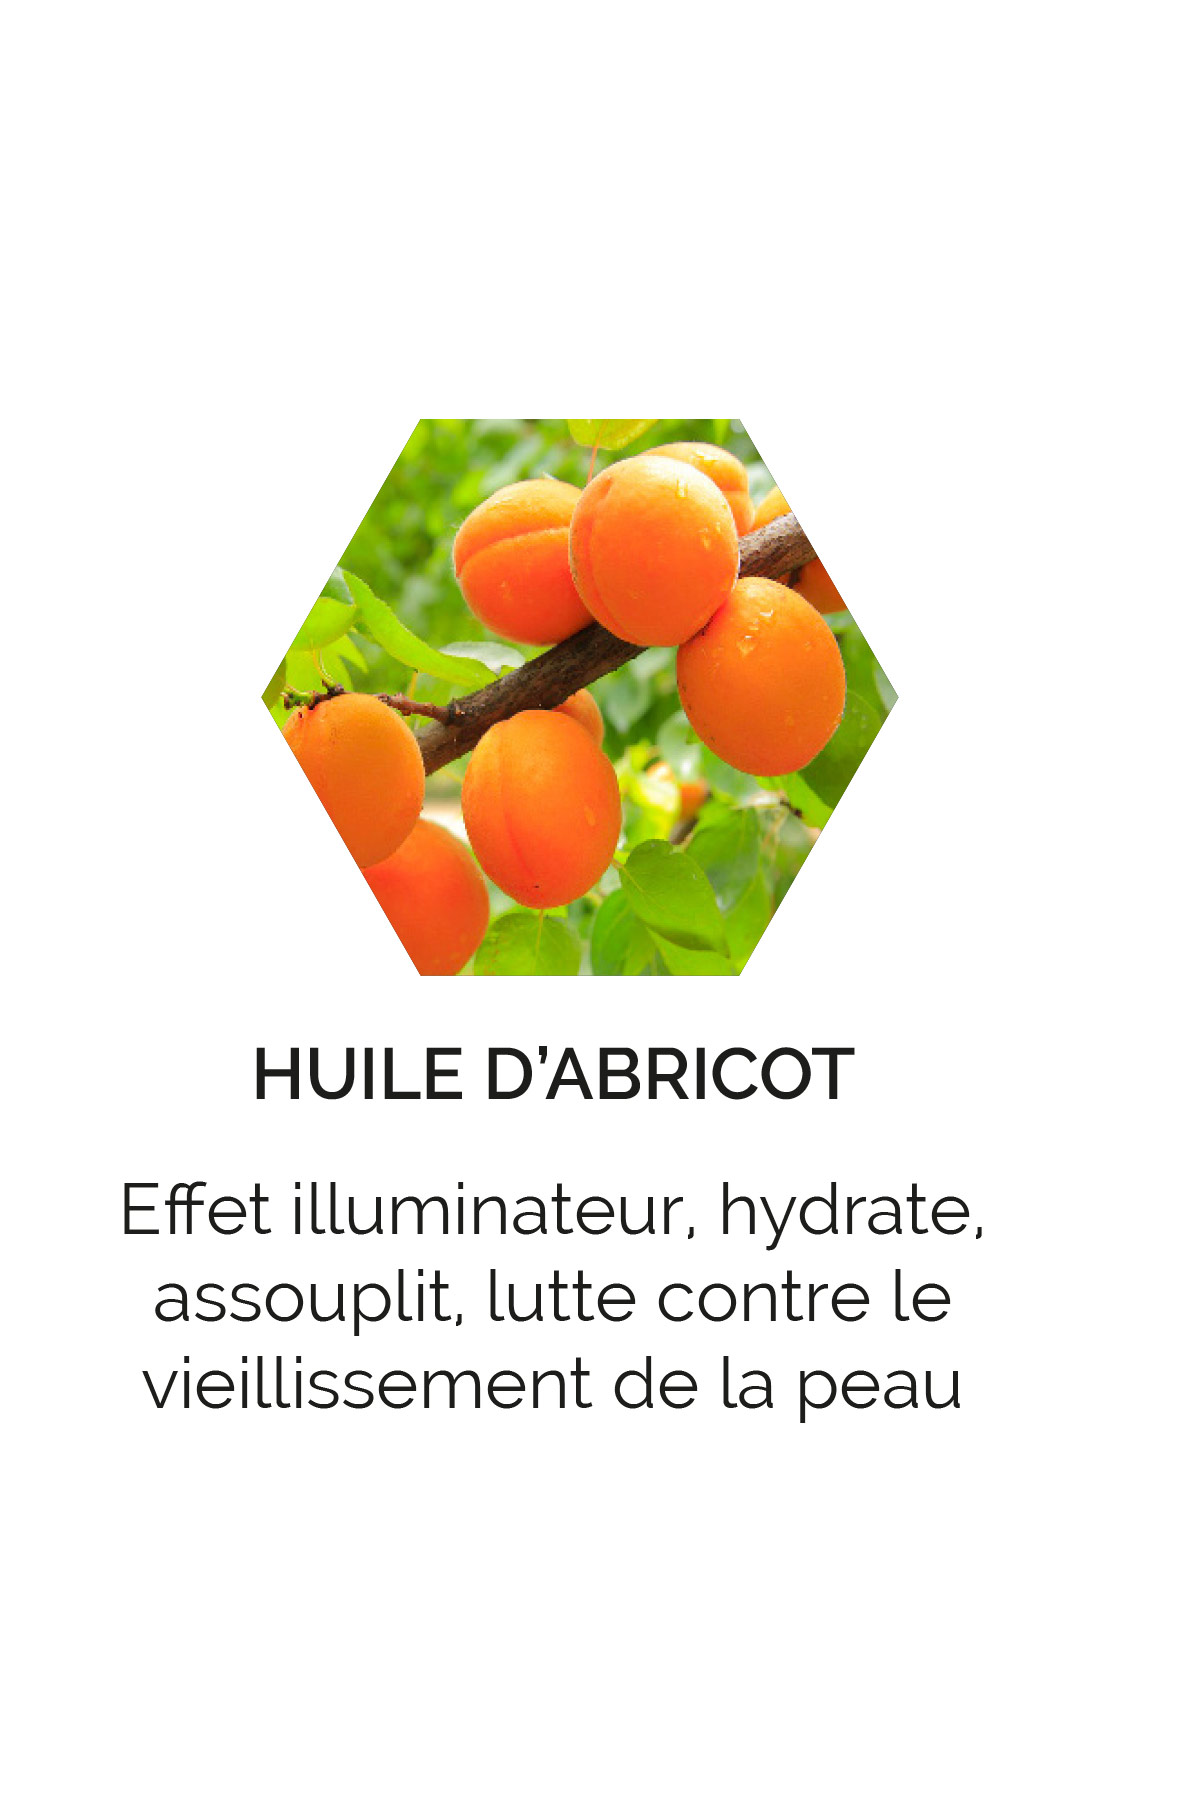 Huile d'abricot